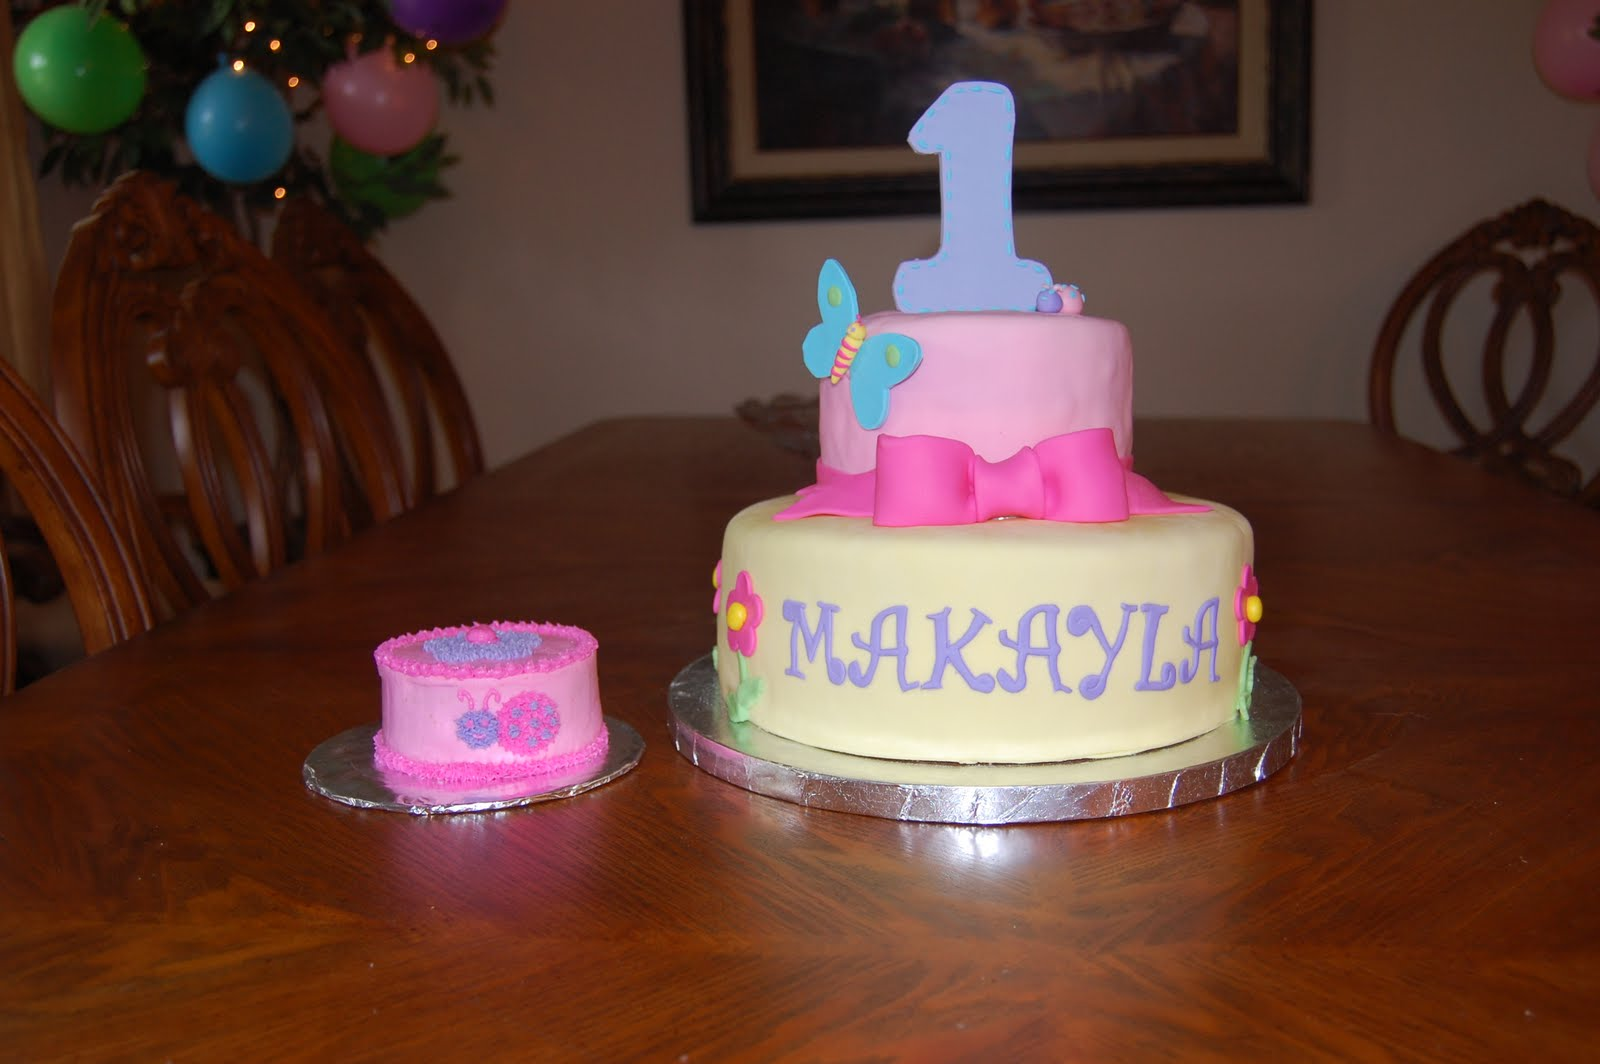 1st Birthday Cake With Smash Cake This Is A 6 Inch And 10 Inch Cake The Top Tier Is Vanilla With Vanilla Buttercream And The Bottom Tier Is Strawberry